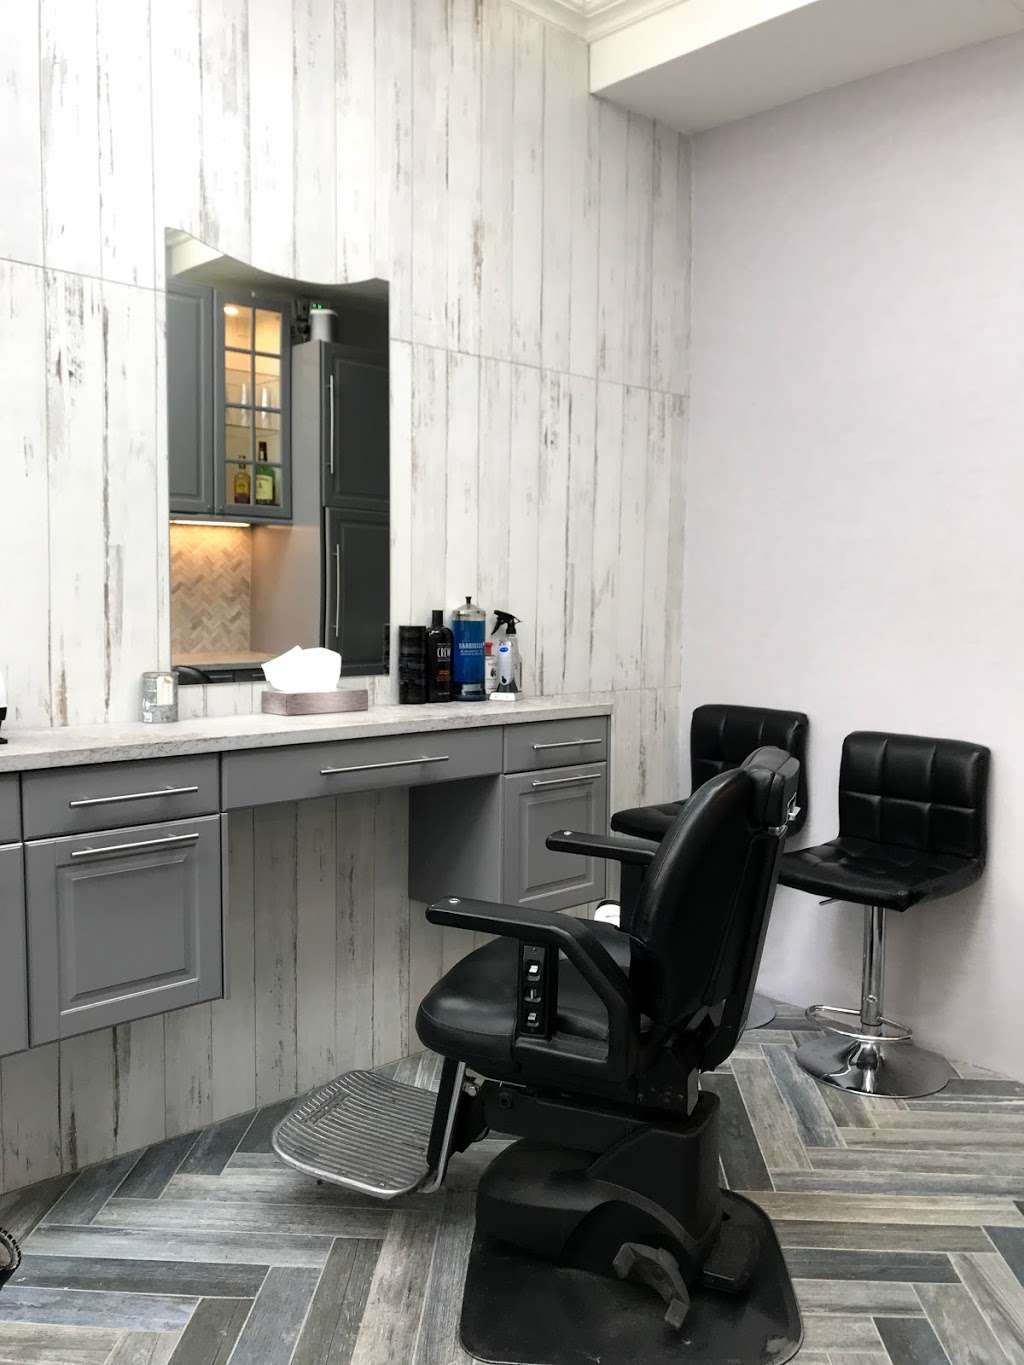 West Village Barber Shop - hair care  | Photo 2 of 6 | Address: 131 Christopher St, New York, NY 10014, USA | Phone: (212) 243-3686